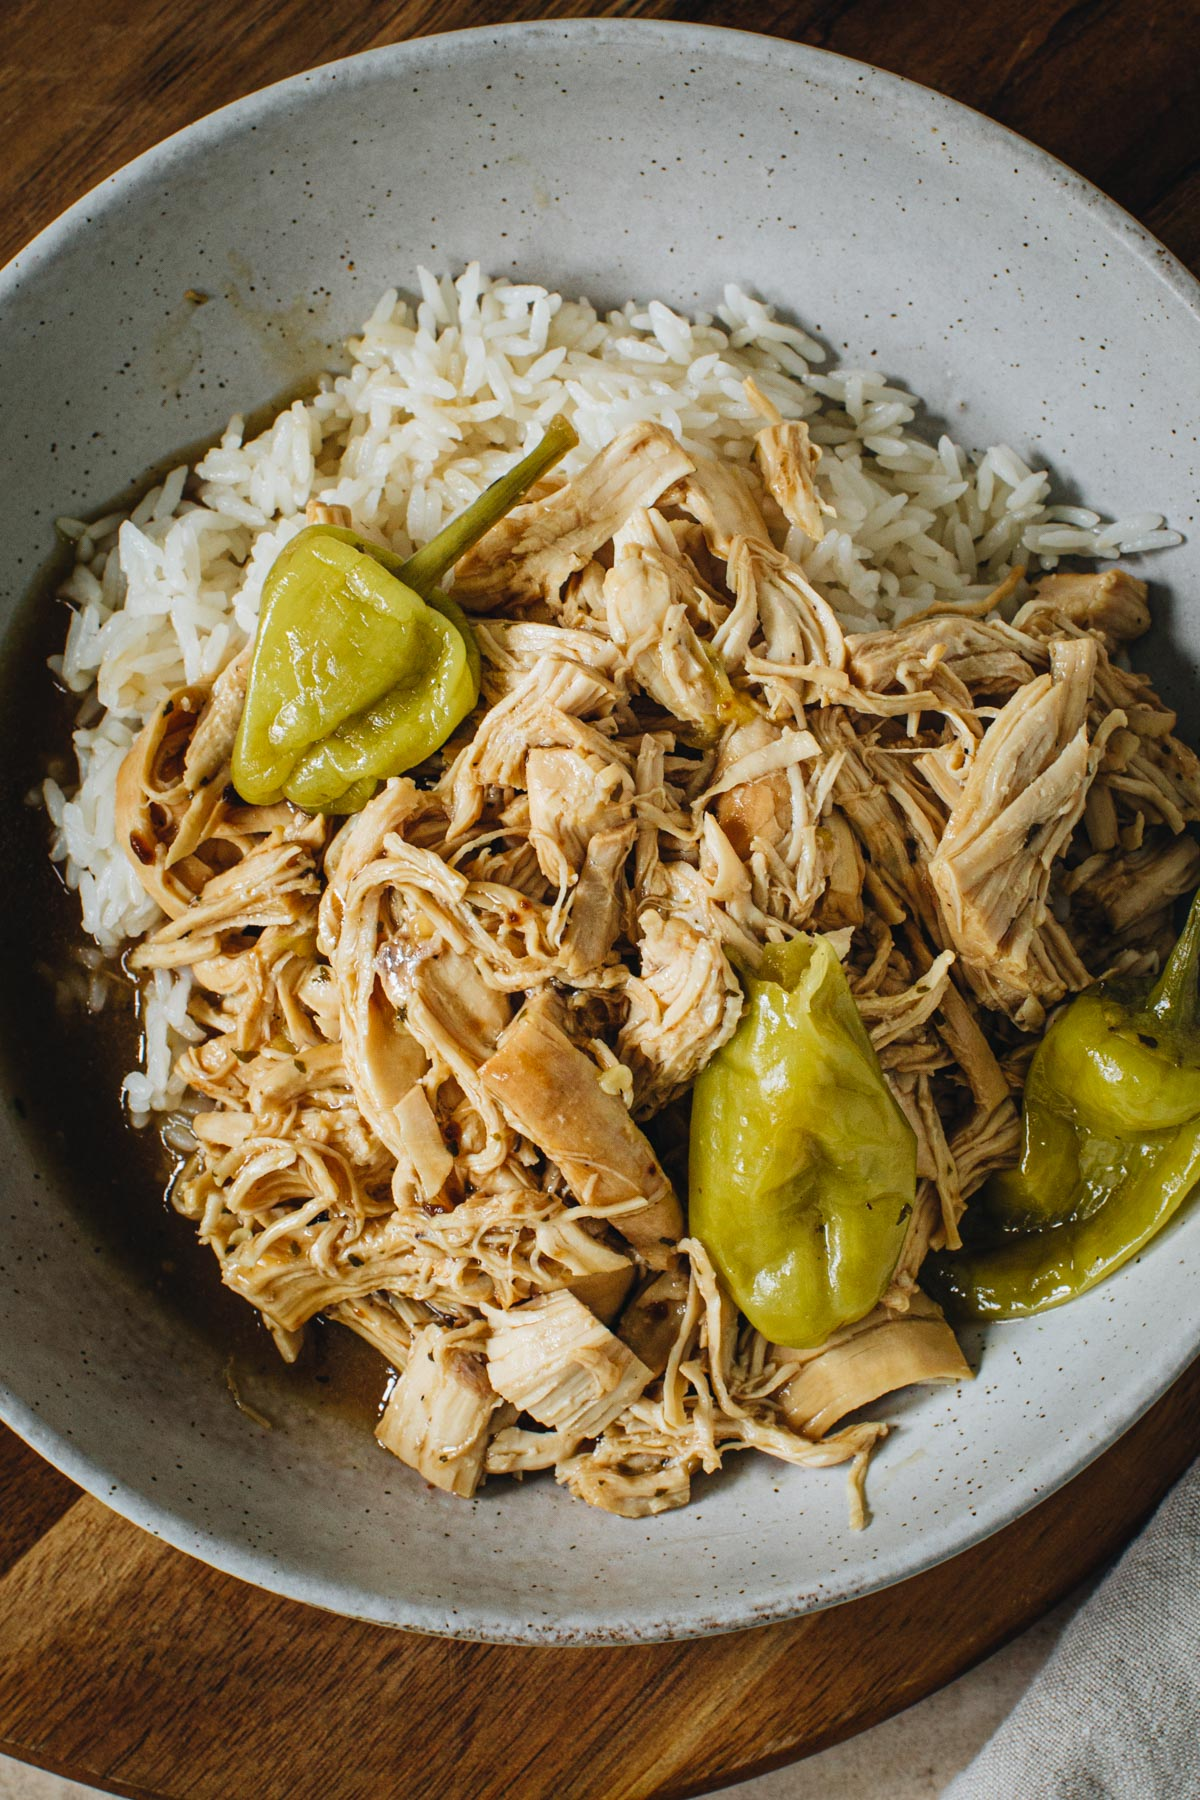 Mississippi chicken over rice in a pottery bowl.